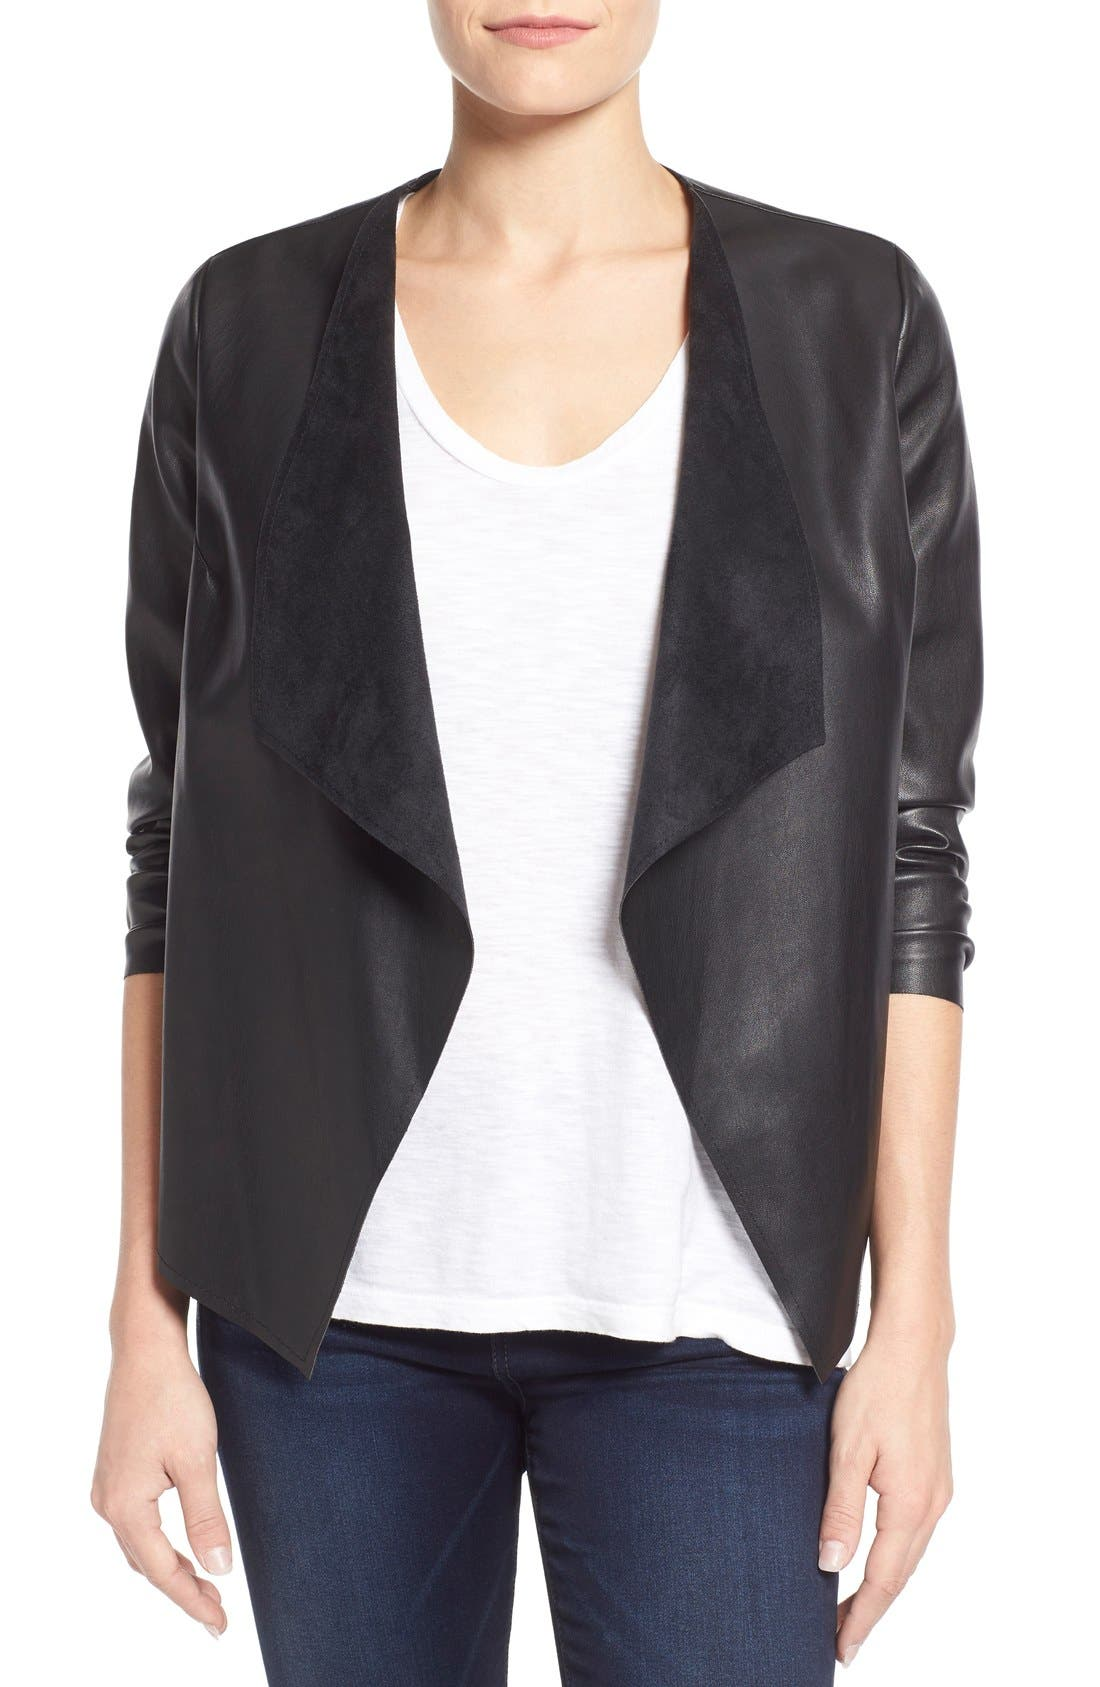 Main Image - KUT from the Kloth 'Mira' Lace Back Faux Leather Jacket